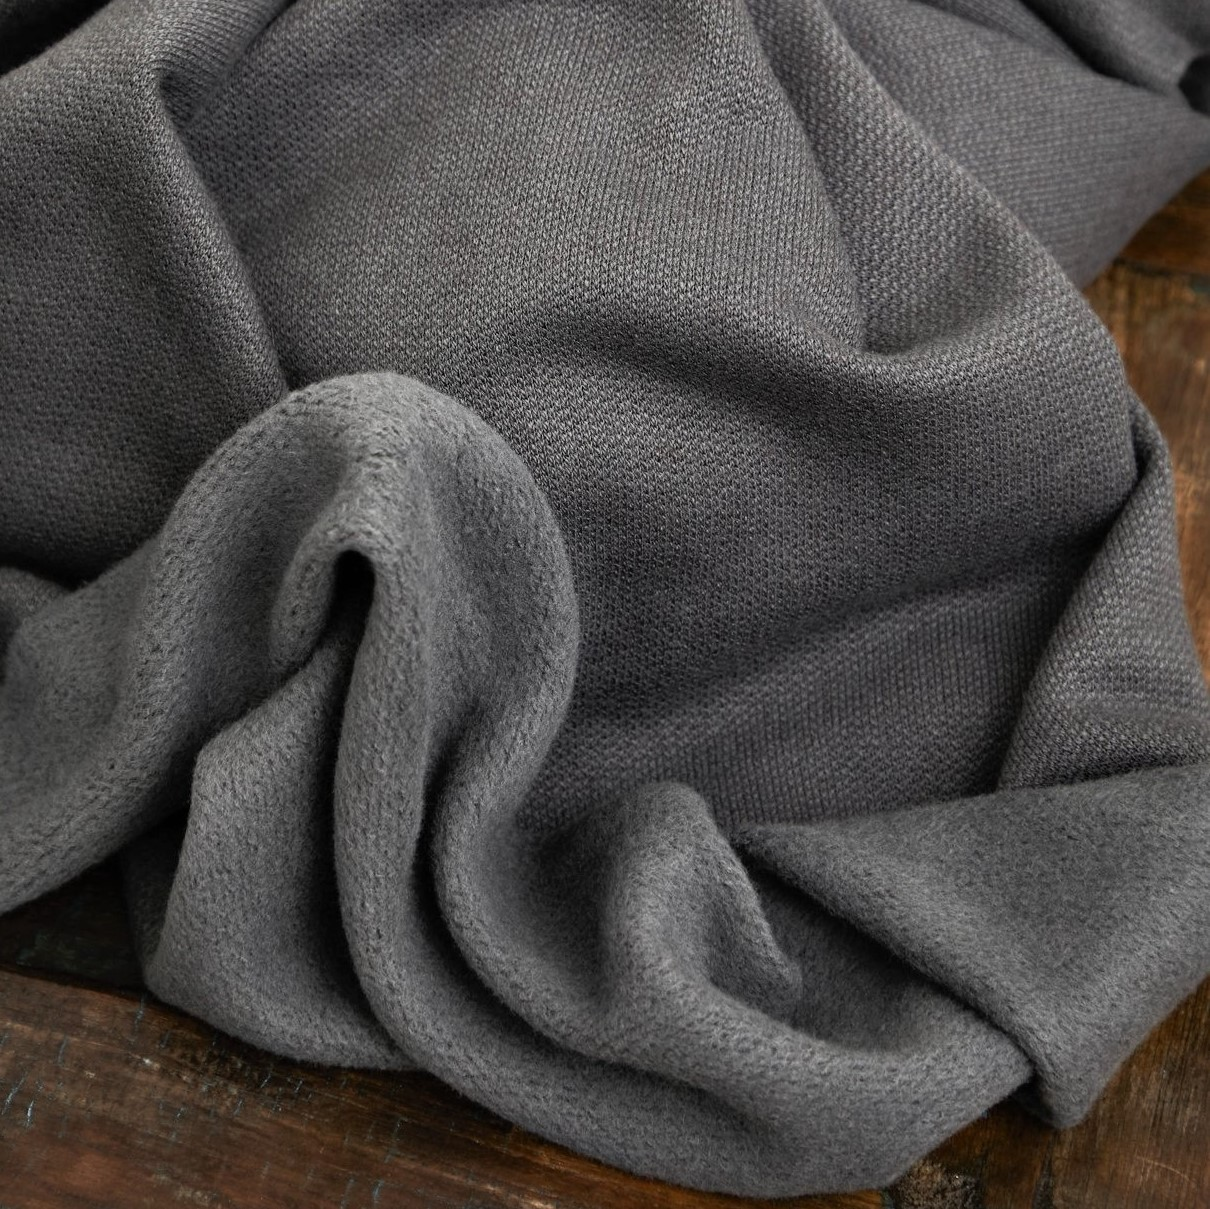 Organic Woolen Fleece Sweat Calm Gray Mind the Maker Stofftraeume4you